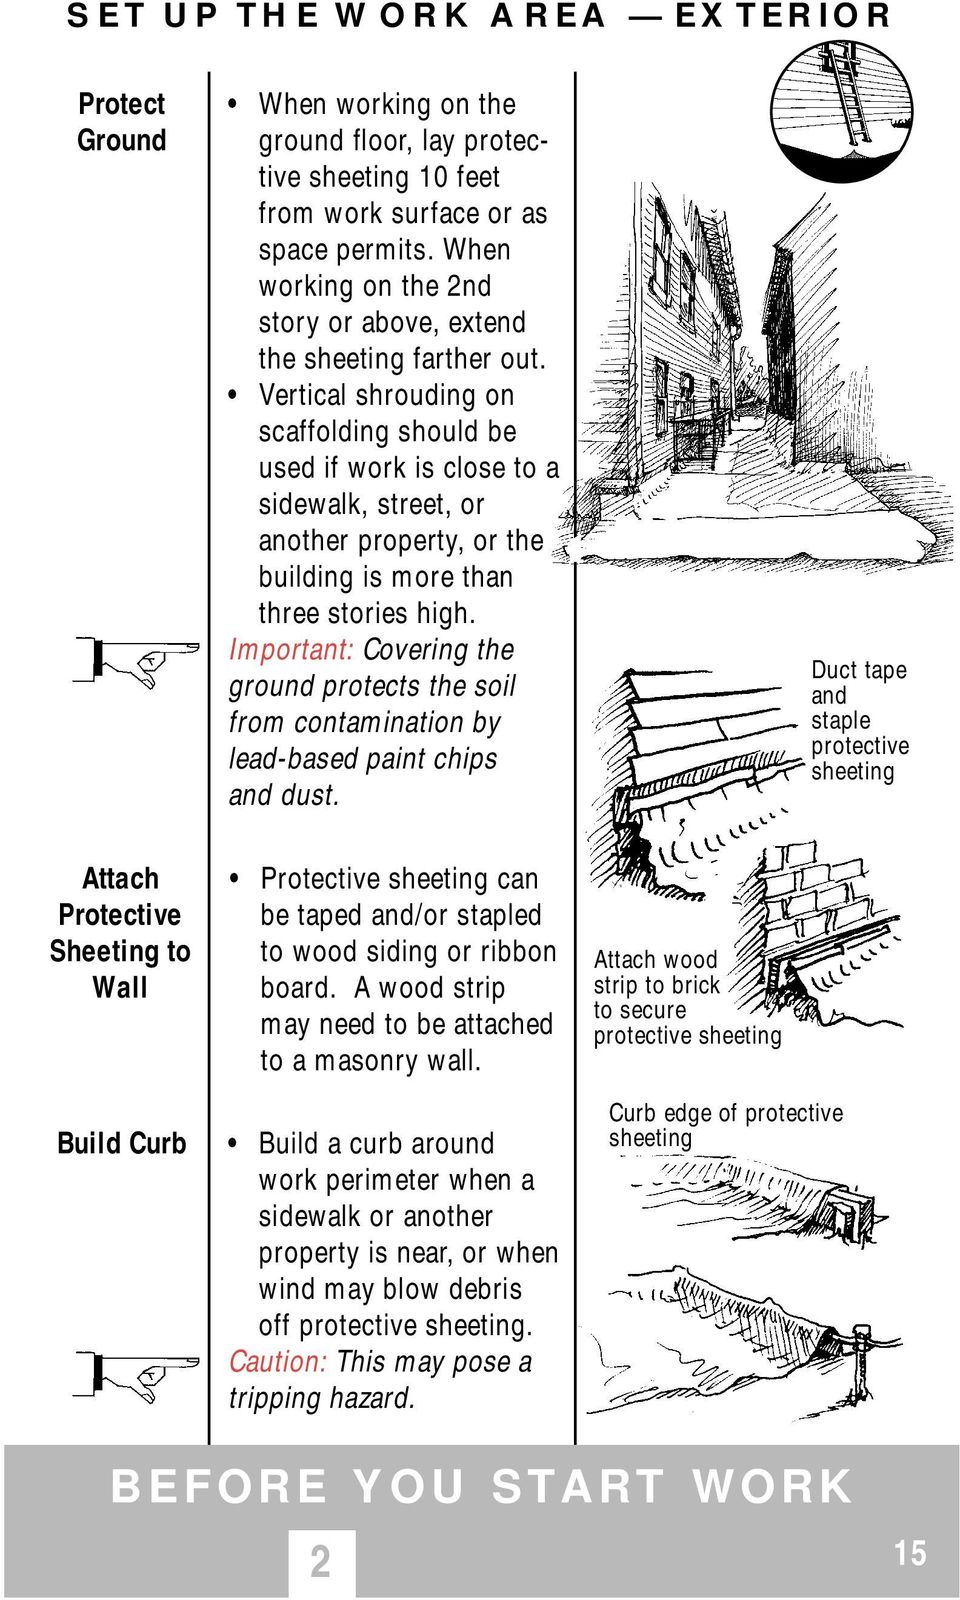 Vertical shrouding on scaffolding should be used if work is close to a sidewalk, street, or another property, or the building is more than three stories high.